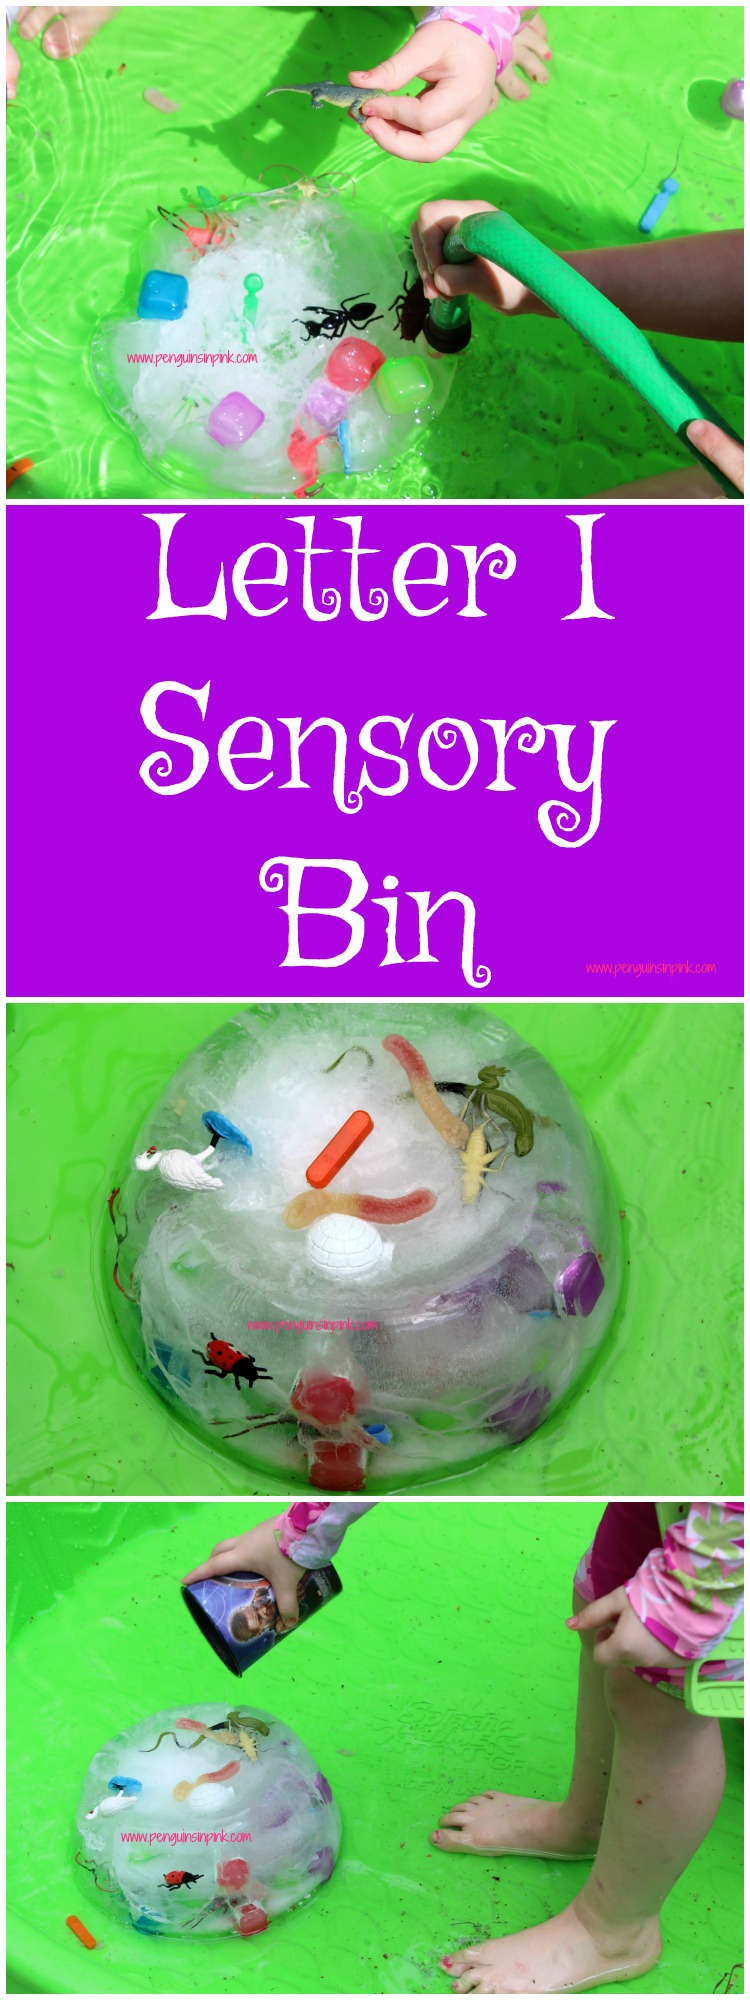 "Letter I Sensory Bin - This sensory bin is perfect for cooling off on a hot day. It is filled with items beginning with the letter ""I"" like iguanas, ibis, and insects."